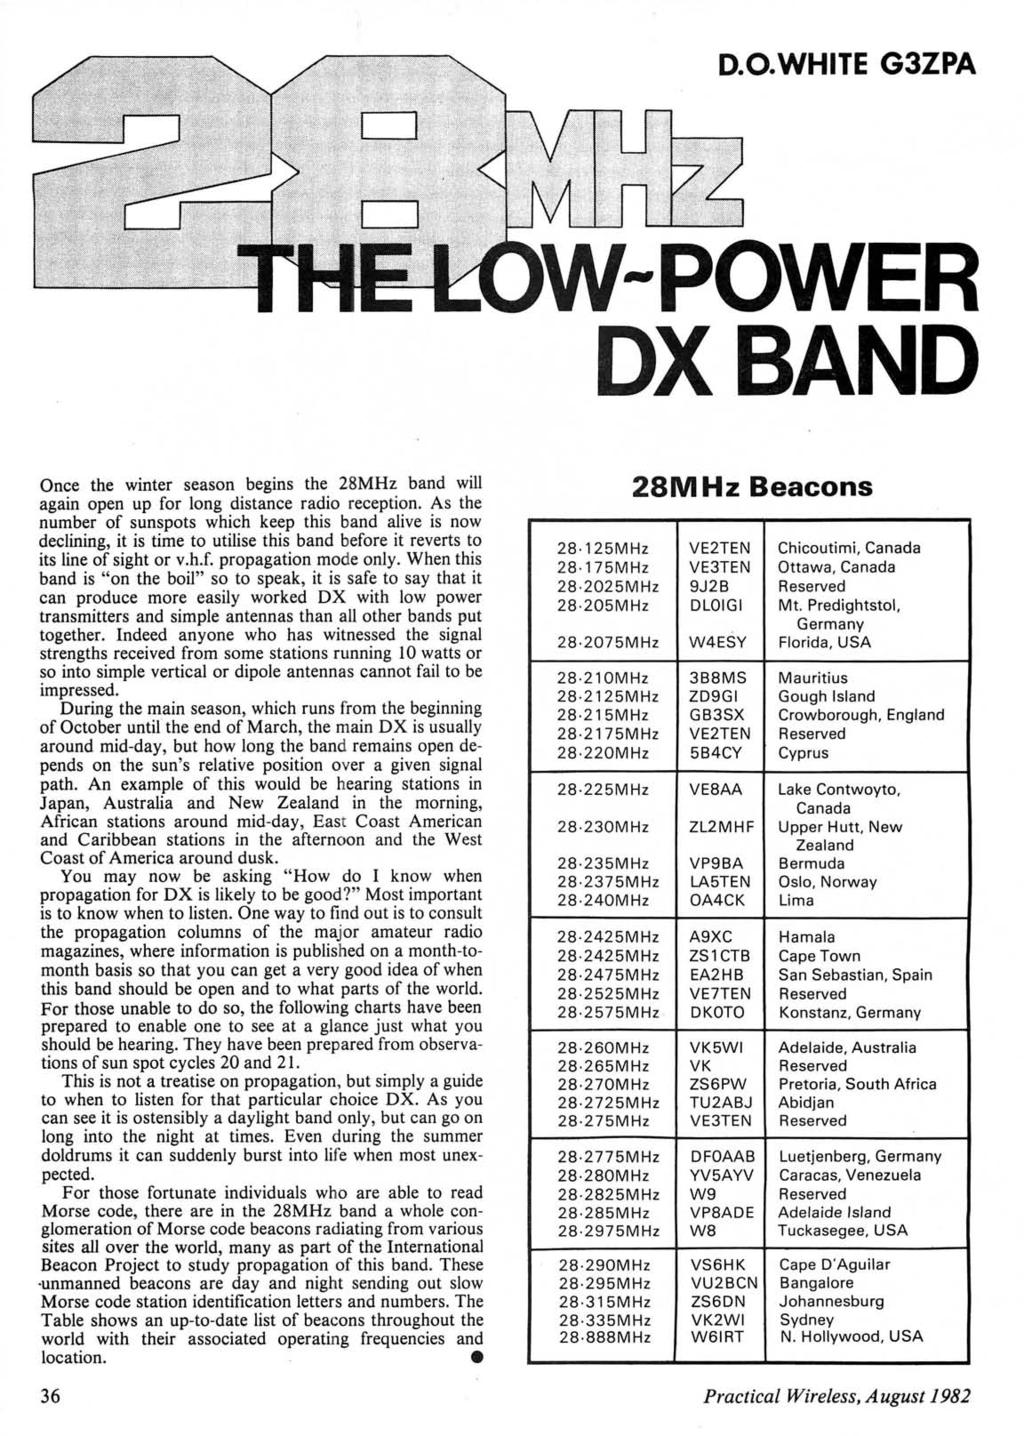 www.americanradiohistory.com D.O.WHTE G3ZPA -POWER DXBAND Once the winter season begins the 28MHz band will again open up for long distance radio reception.